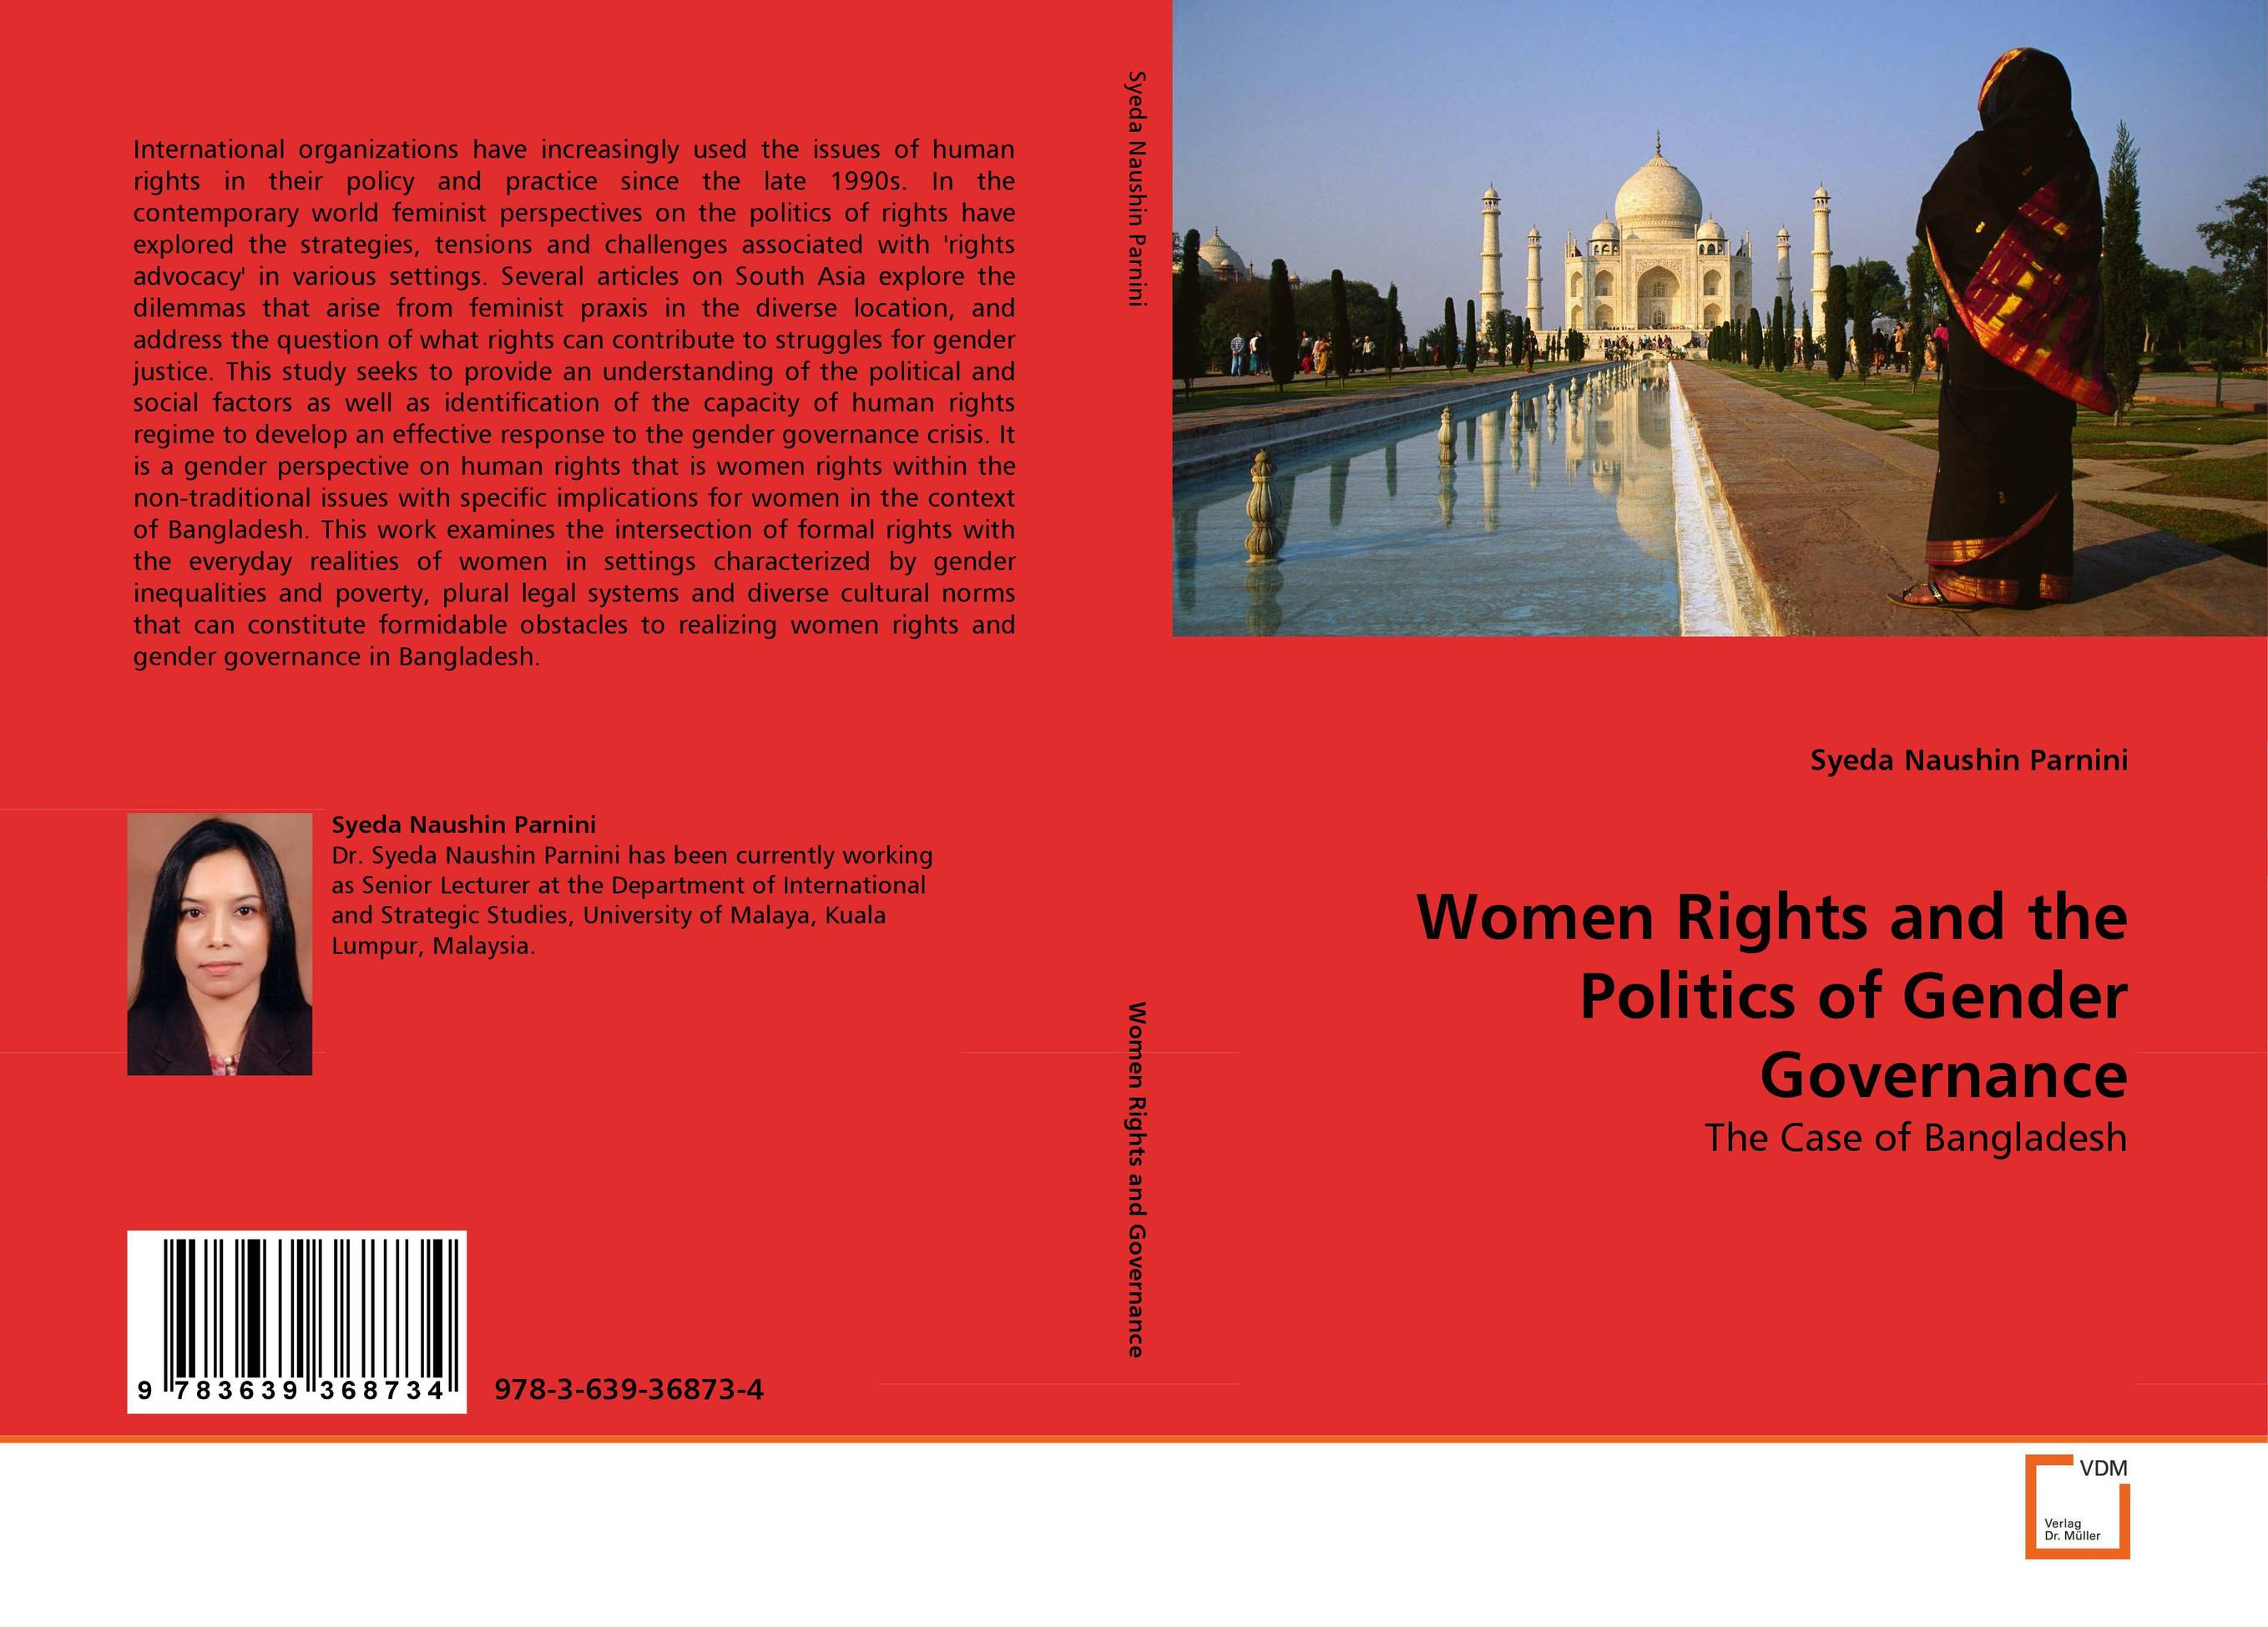 Women Rights and the Politics of Gender Governance